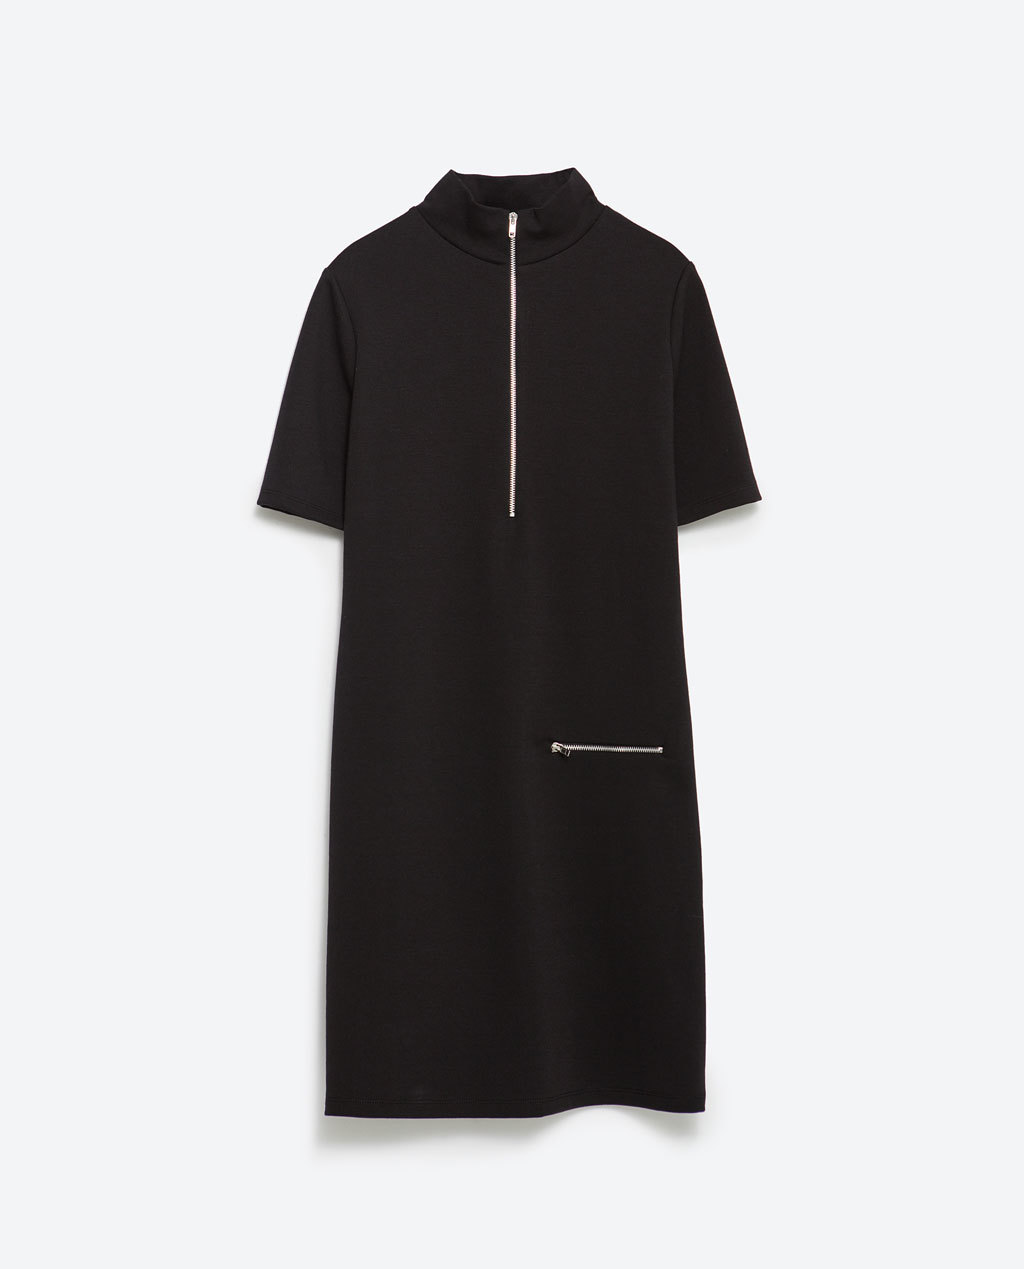 Dress With Zips - style: shift; pattern: plain; neckline: high neck; predominant colour: black; occasions: casual, creative work; length: just above the knee; fit: body skimming; fibres: polyester/polyamide - stretch; sleeve length: short sleeve; sleeve style: standard; pattern type: fabric; texture group: woven light midweight; season: a/w 2015; wardrobe: basic